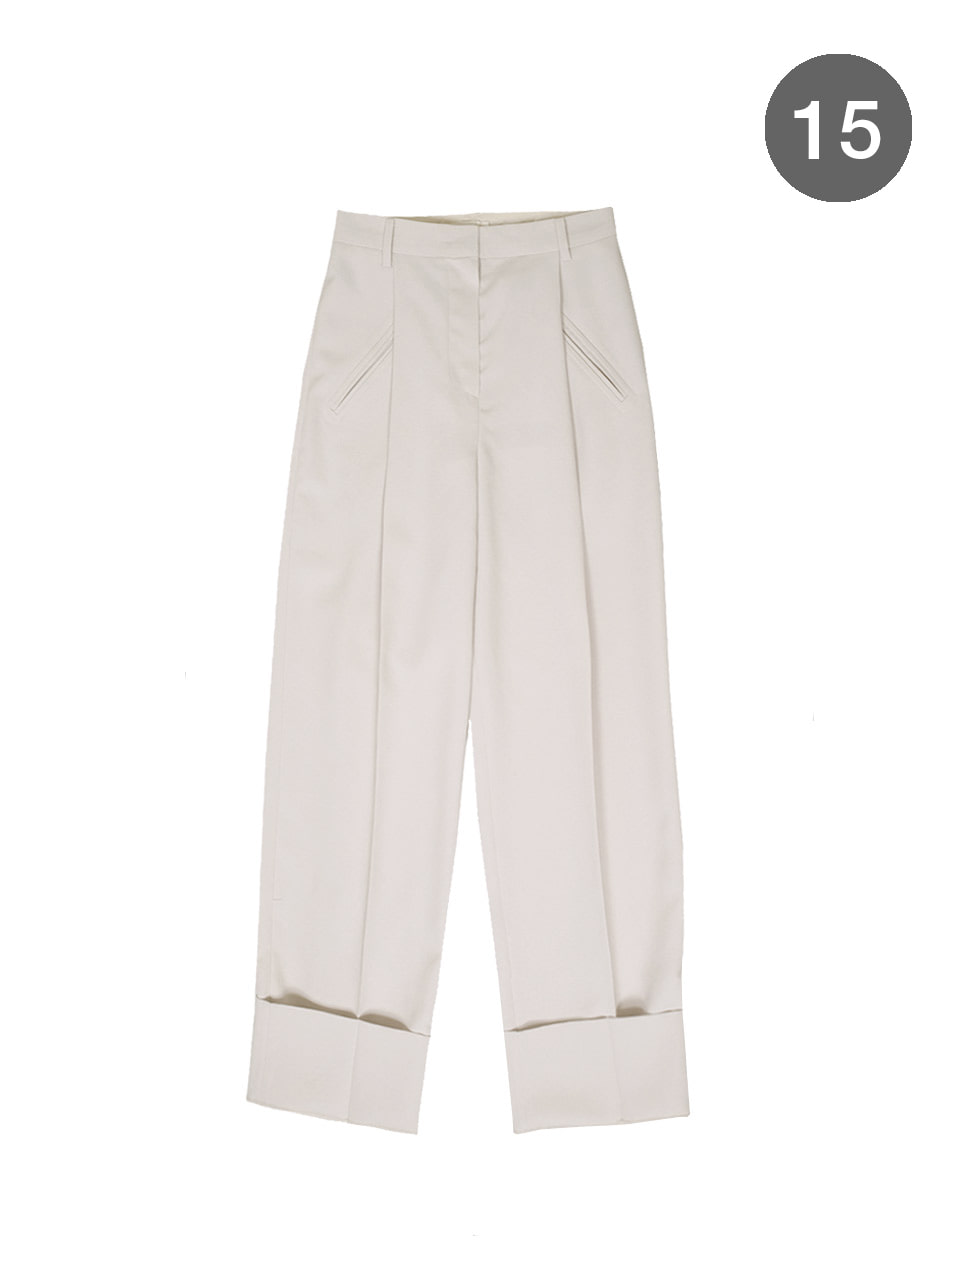 20ss BOW PANTS [3COLOR]